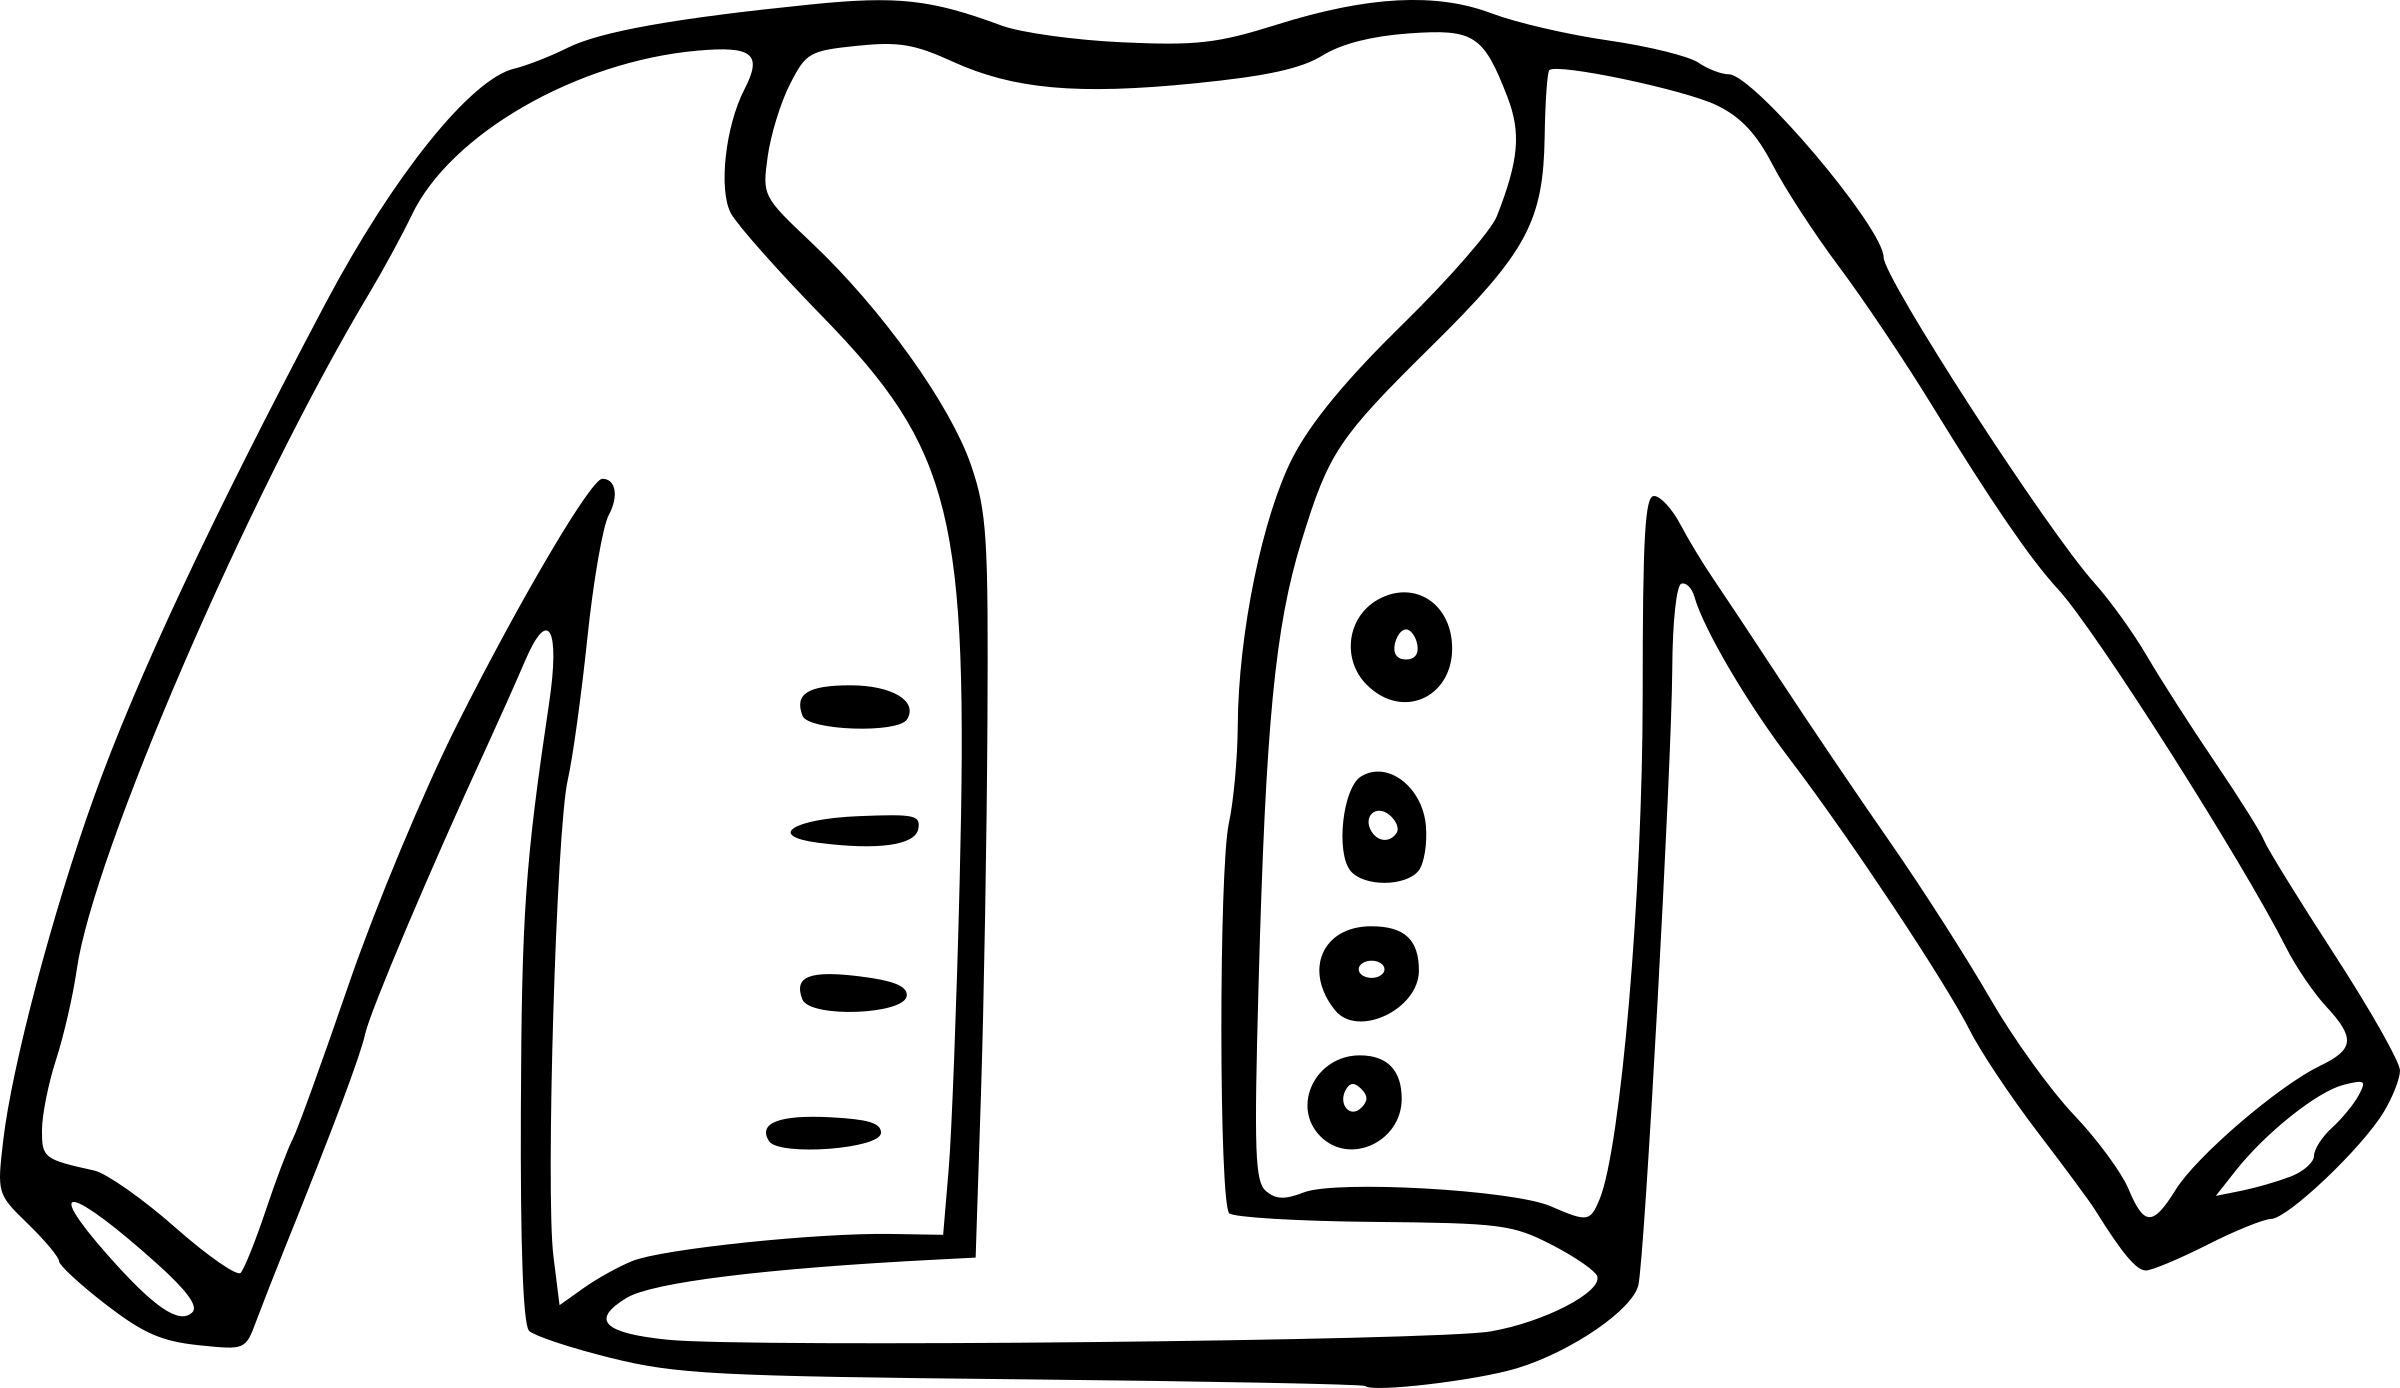 Clipart Man In Life Jacket Black And White